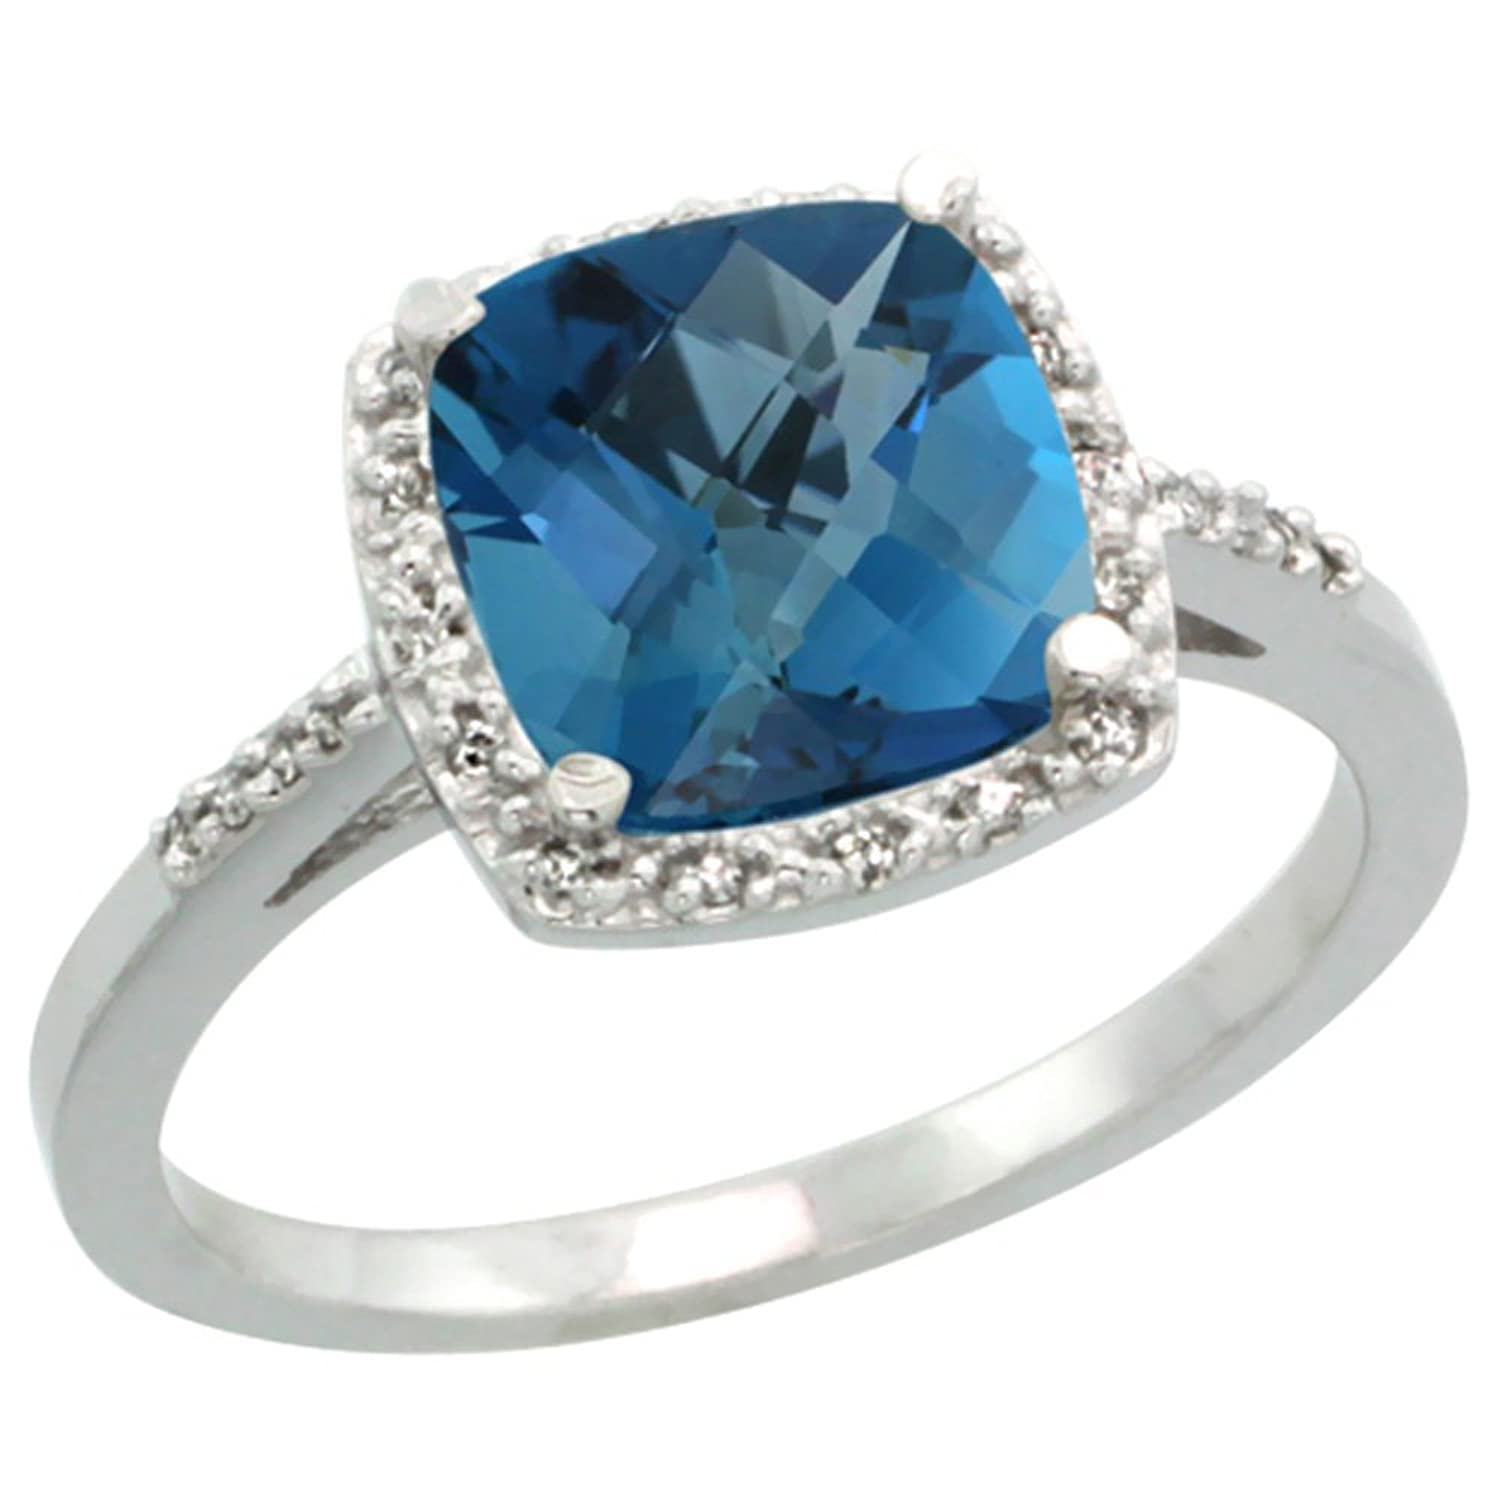 Amazon 10K White Gold Diamond Natural London Blue Topaz Ring